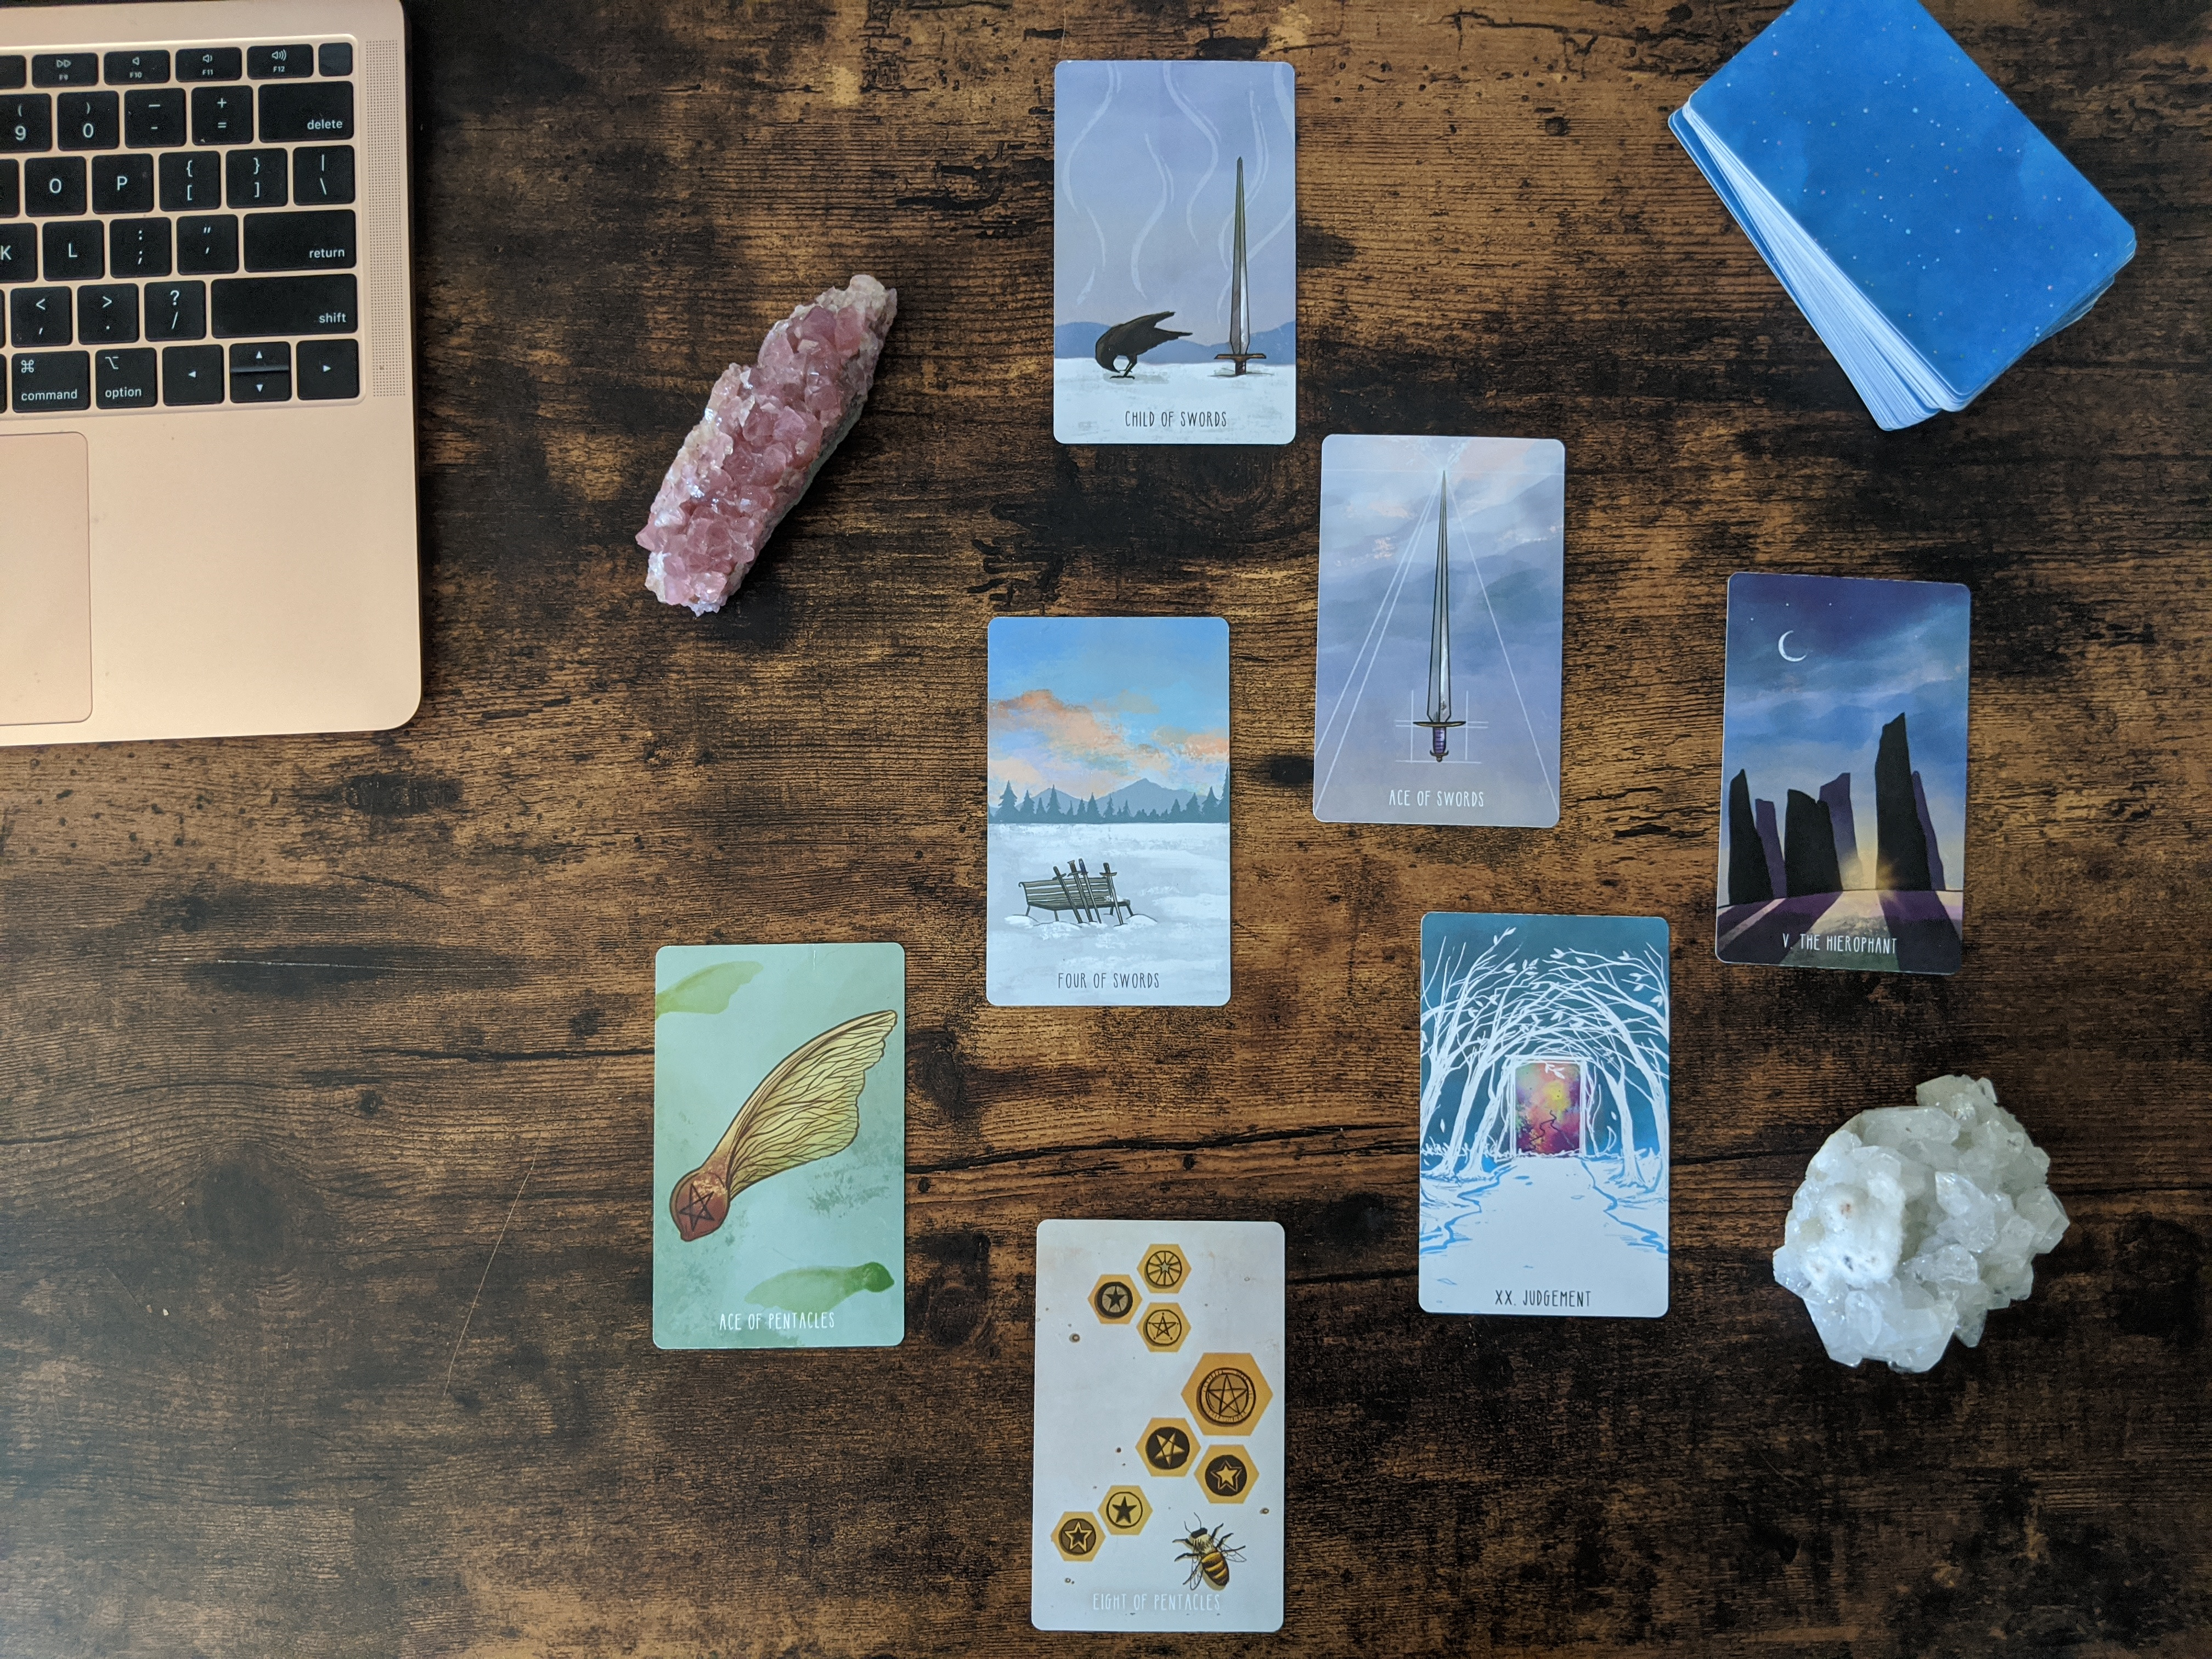 An Equinox Tarot Reading for the Collective